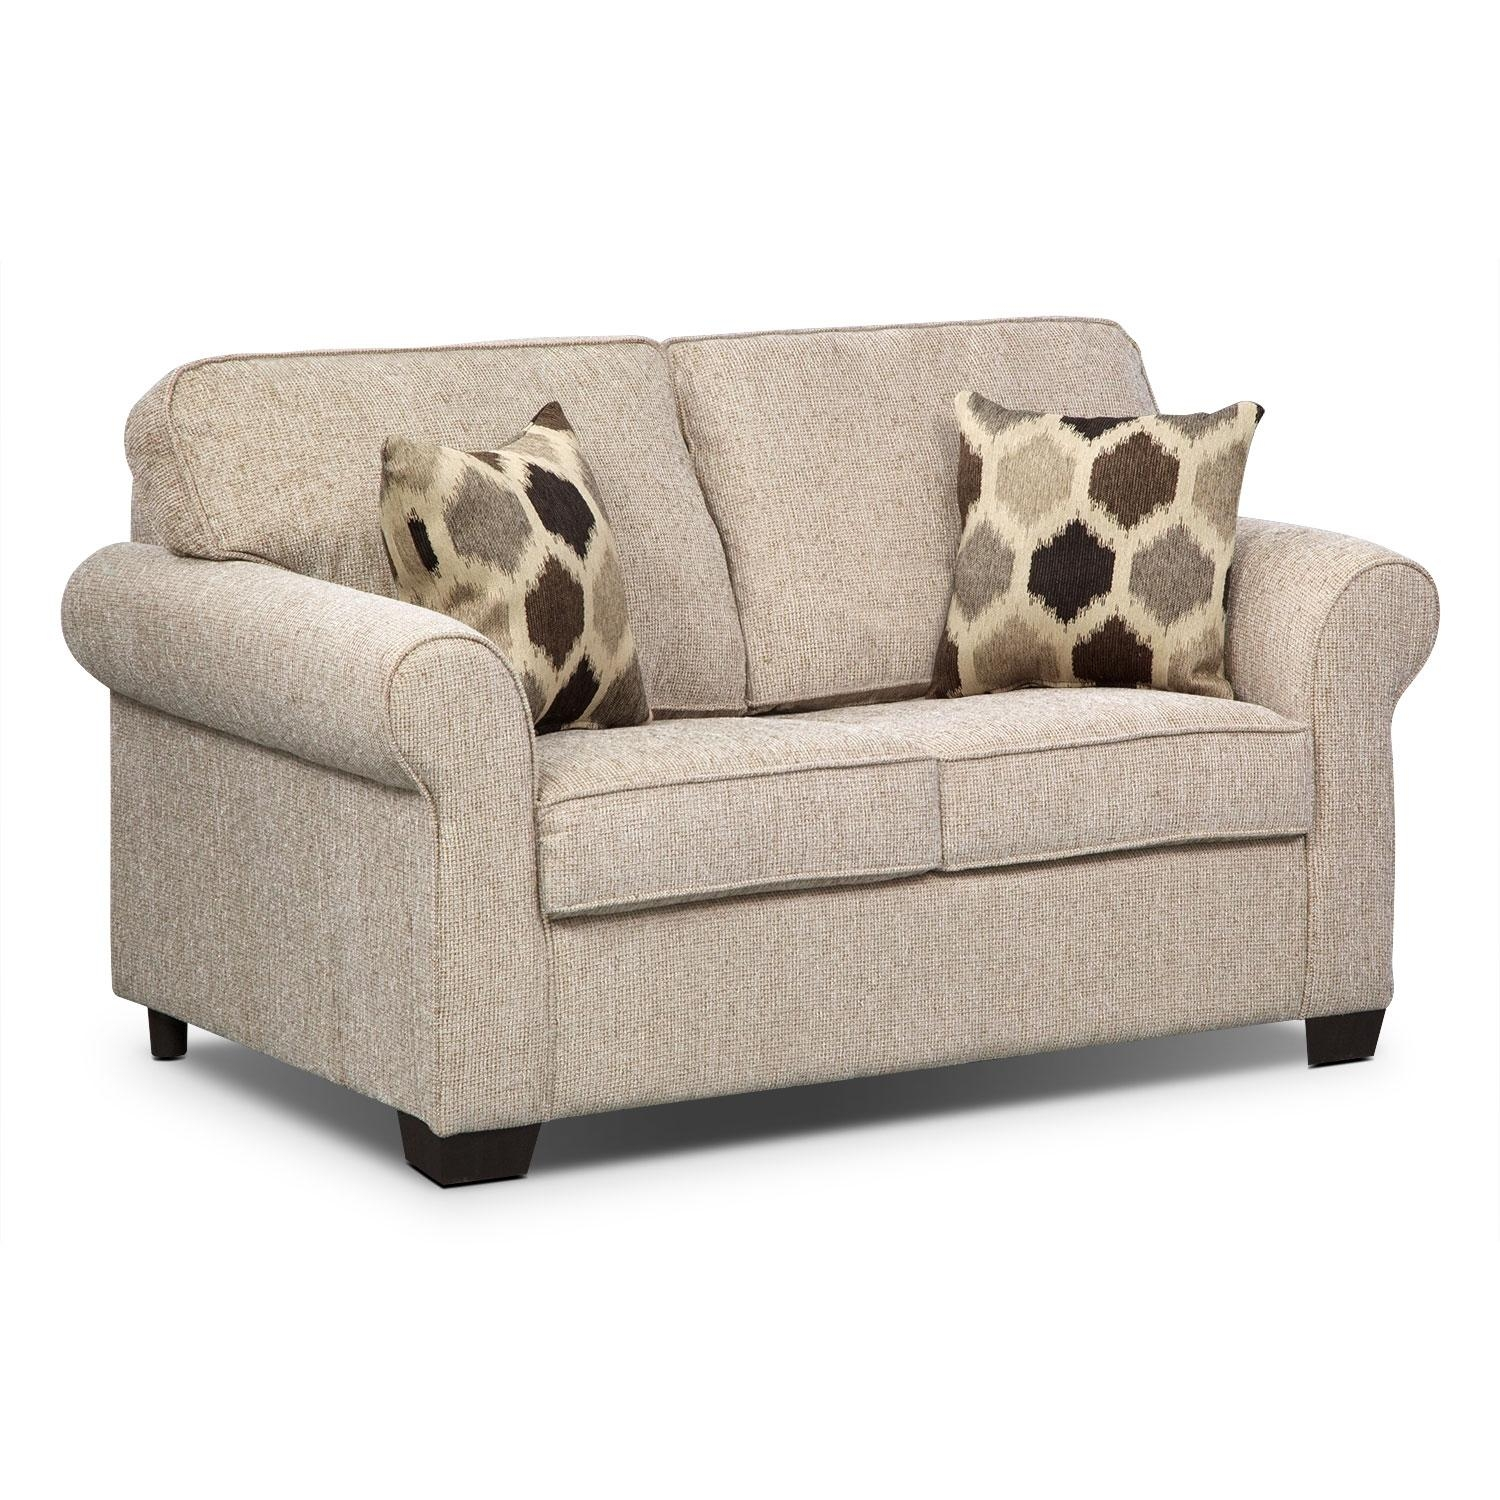 Furniture: Comfortable Tempurpedic Sofa Bed For Cozy Living Room With Twin Sofa Chairs (View 3 of 20)